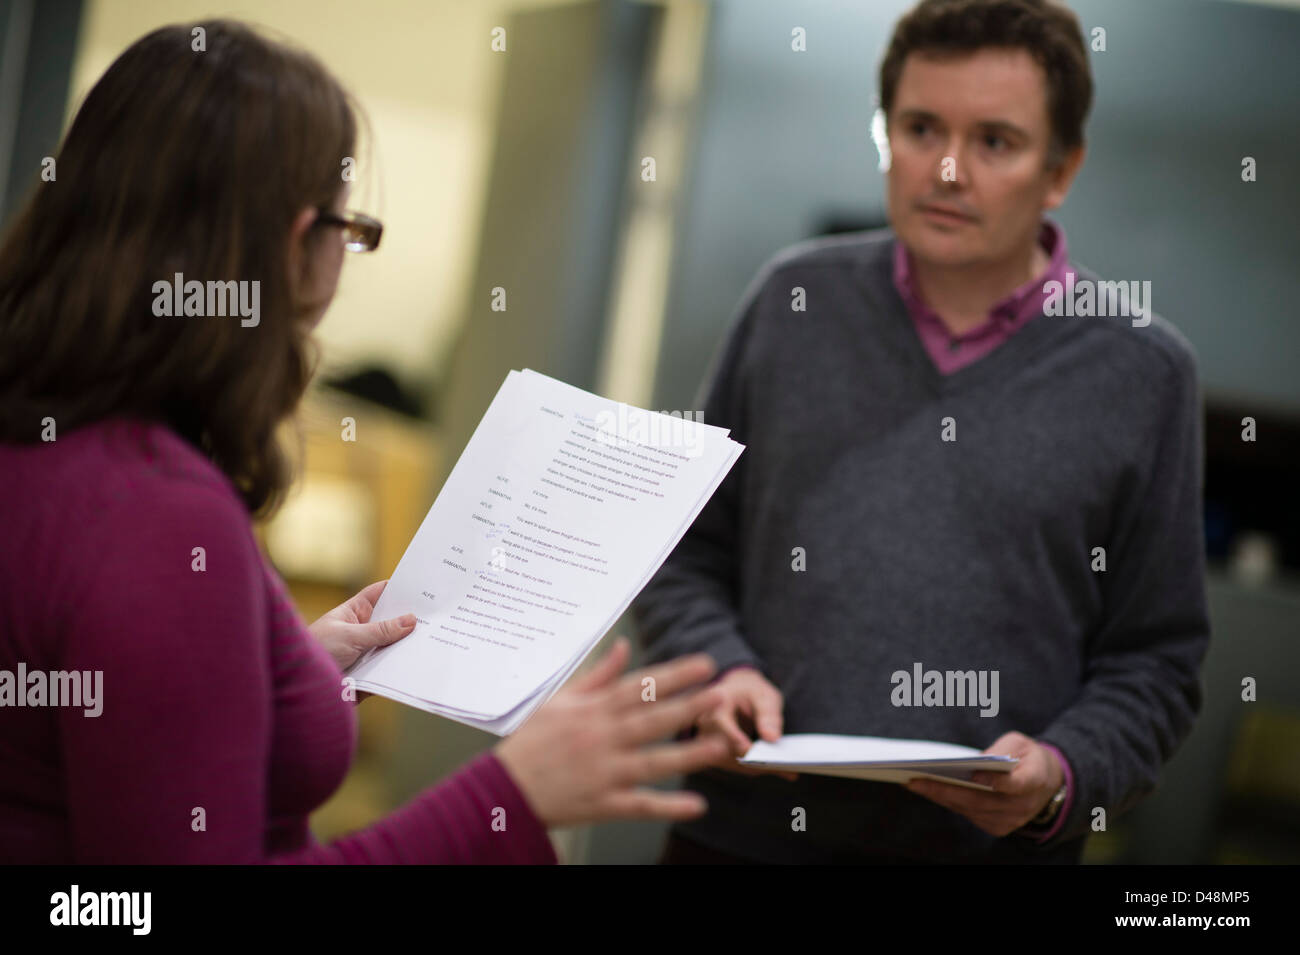 two Actors in rehearsal, holding their scripts, reading lines of dialogue from a new play, UK - Stock Image